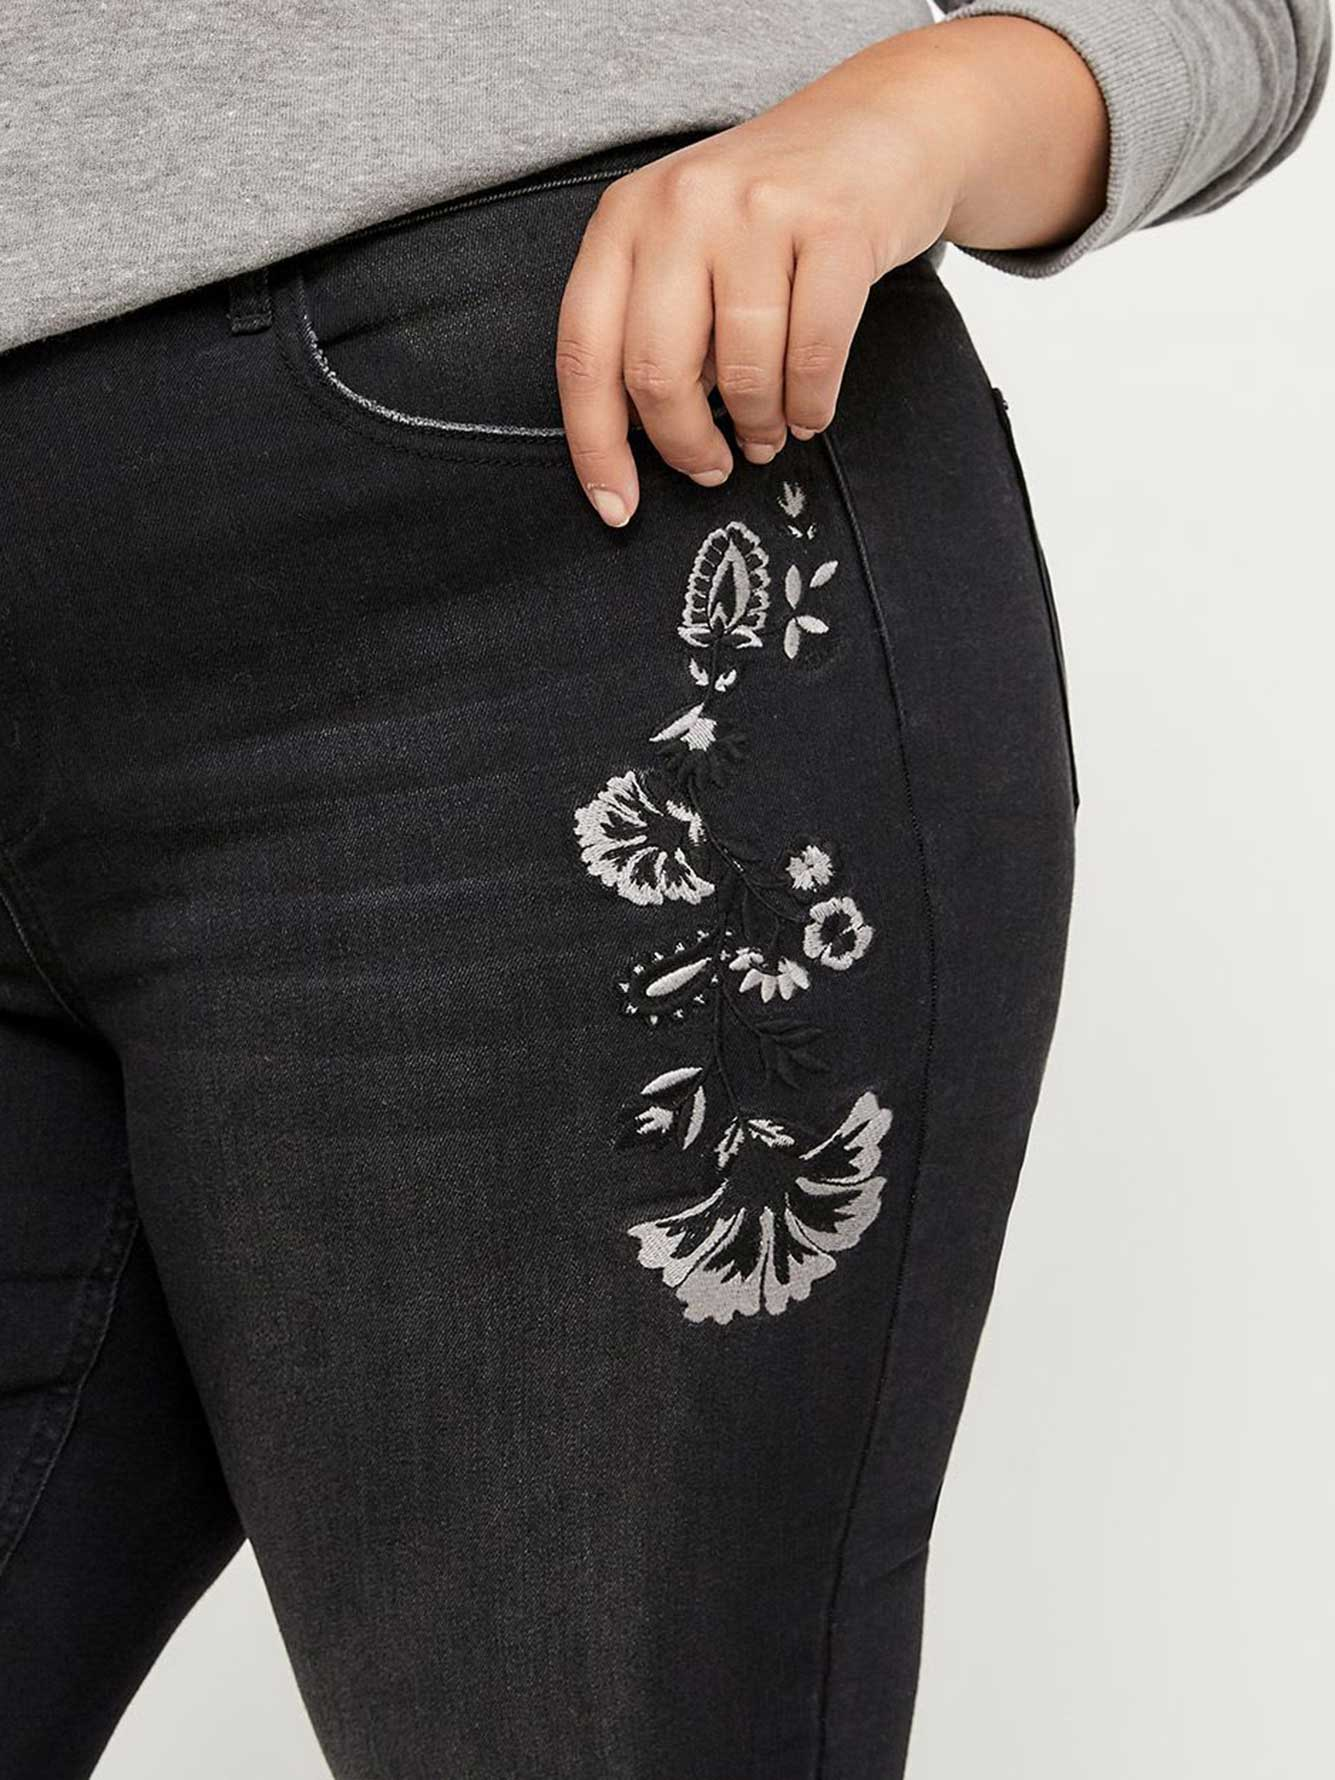 Petite Slightly Curvy Skinny Leg Jean with Embroidery - d/C JEANS